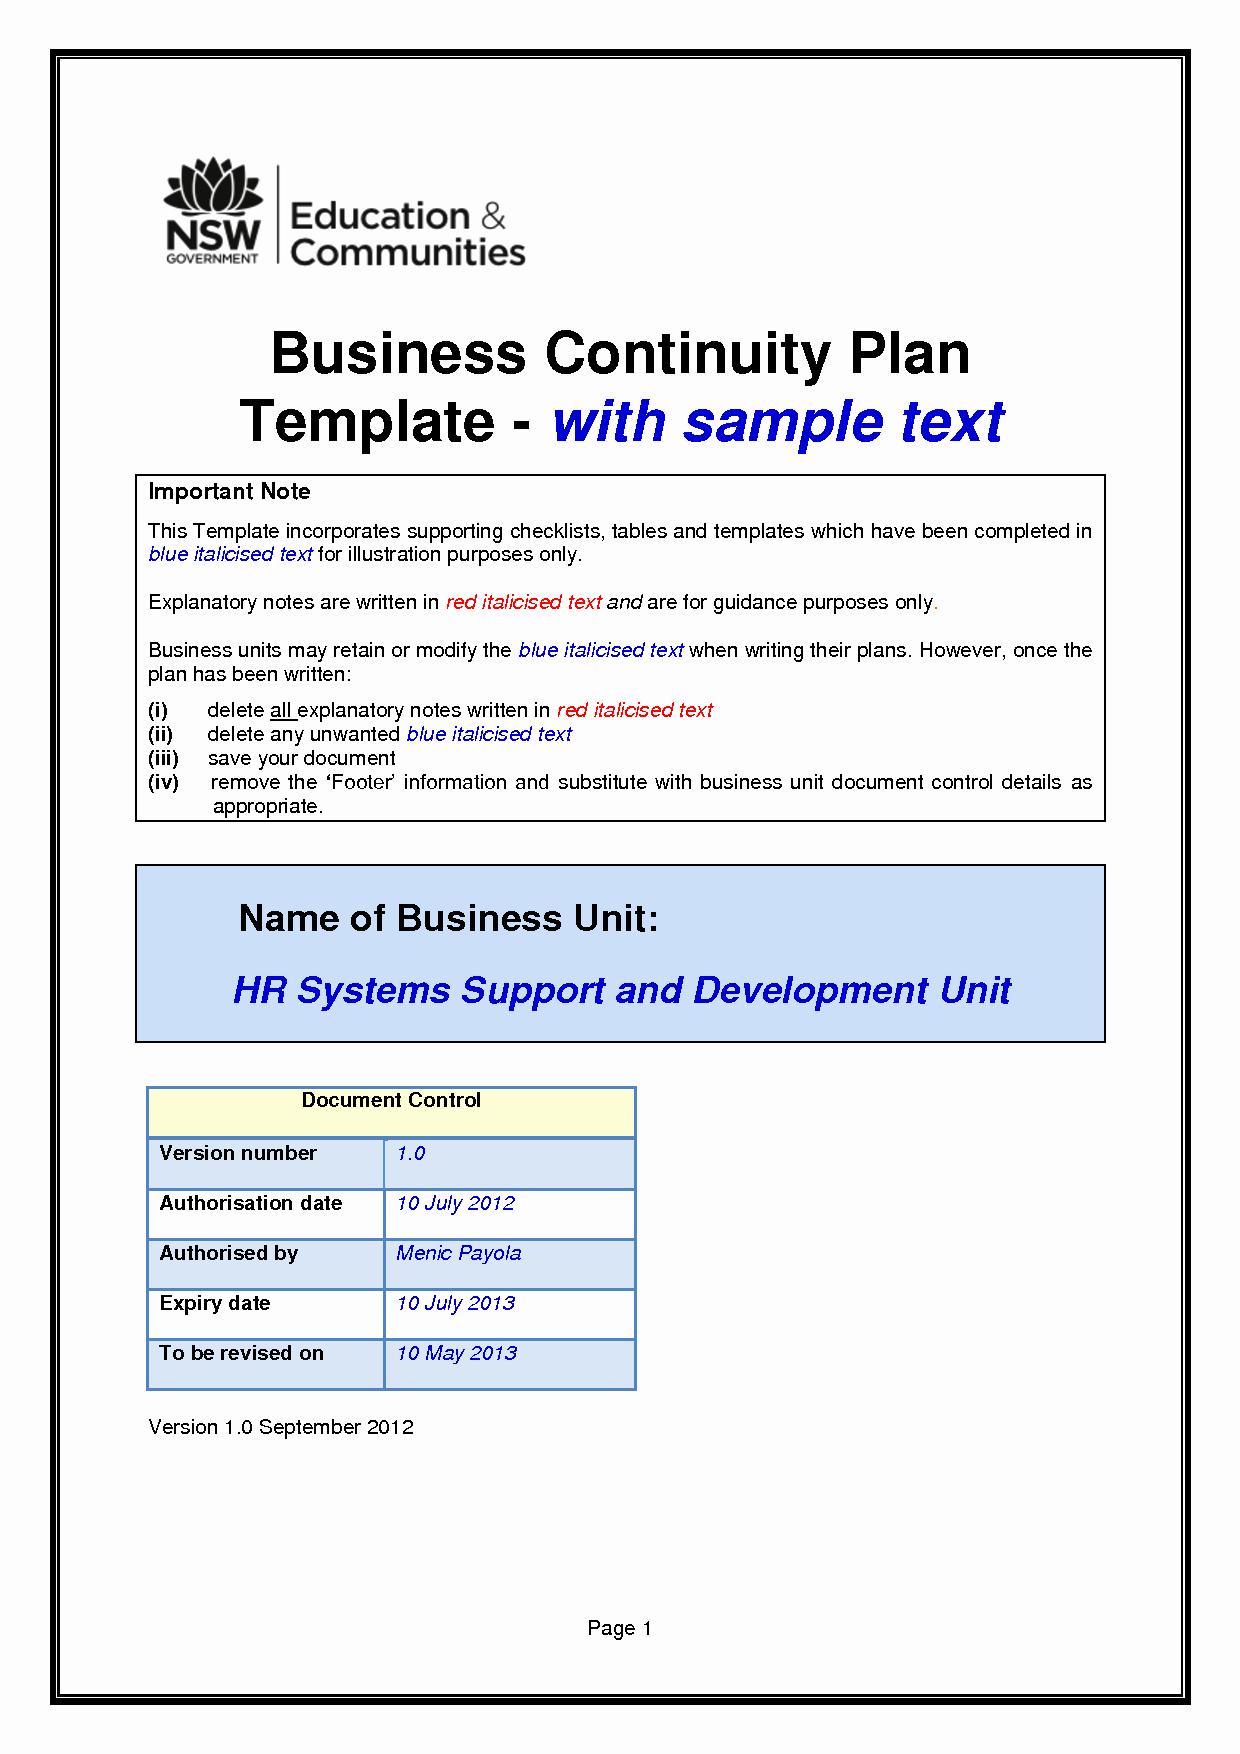 Simple Business Continuity Plan Template Luxury Business Continuity Plan Template